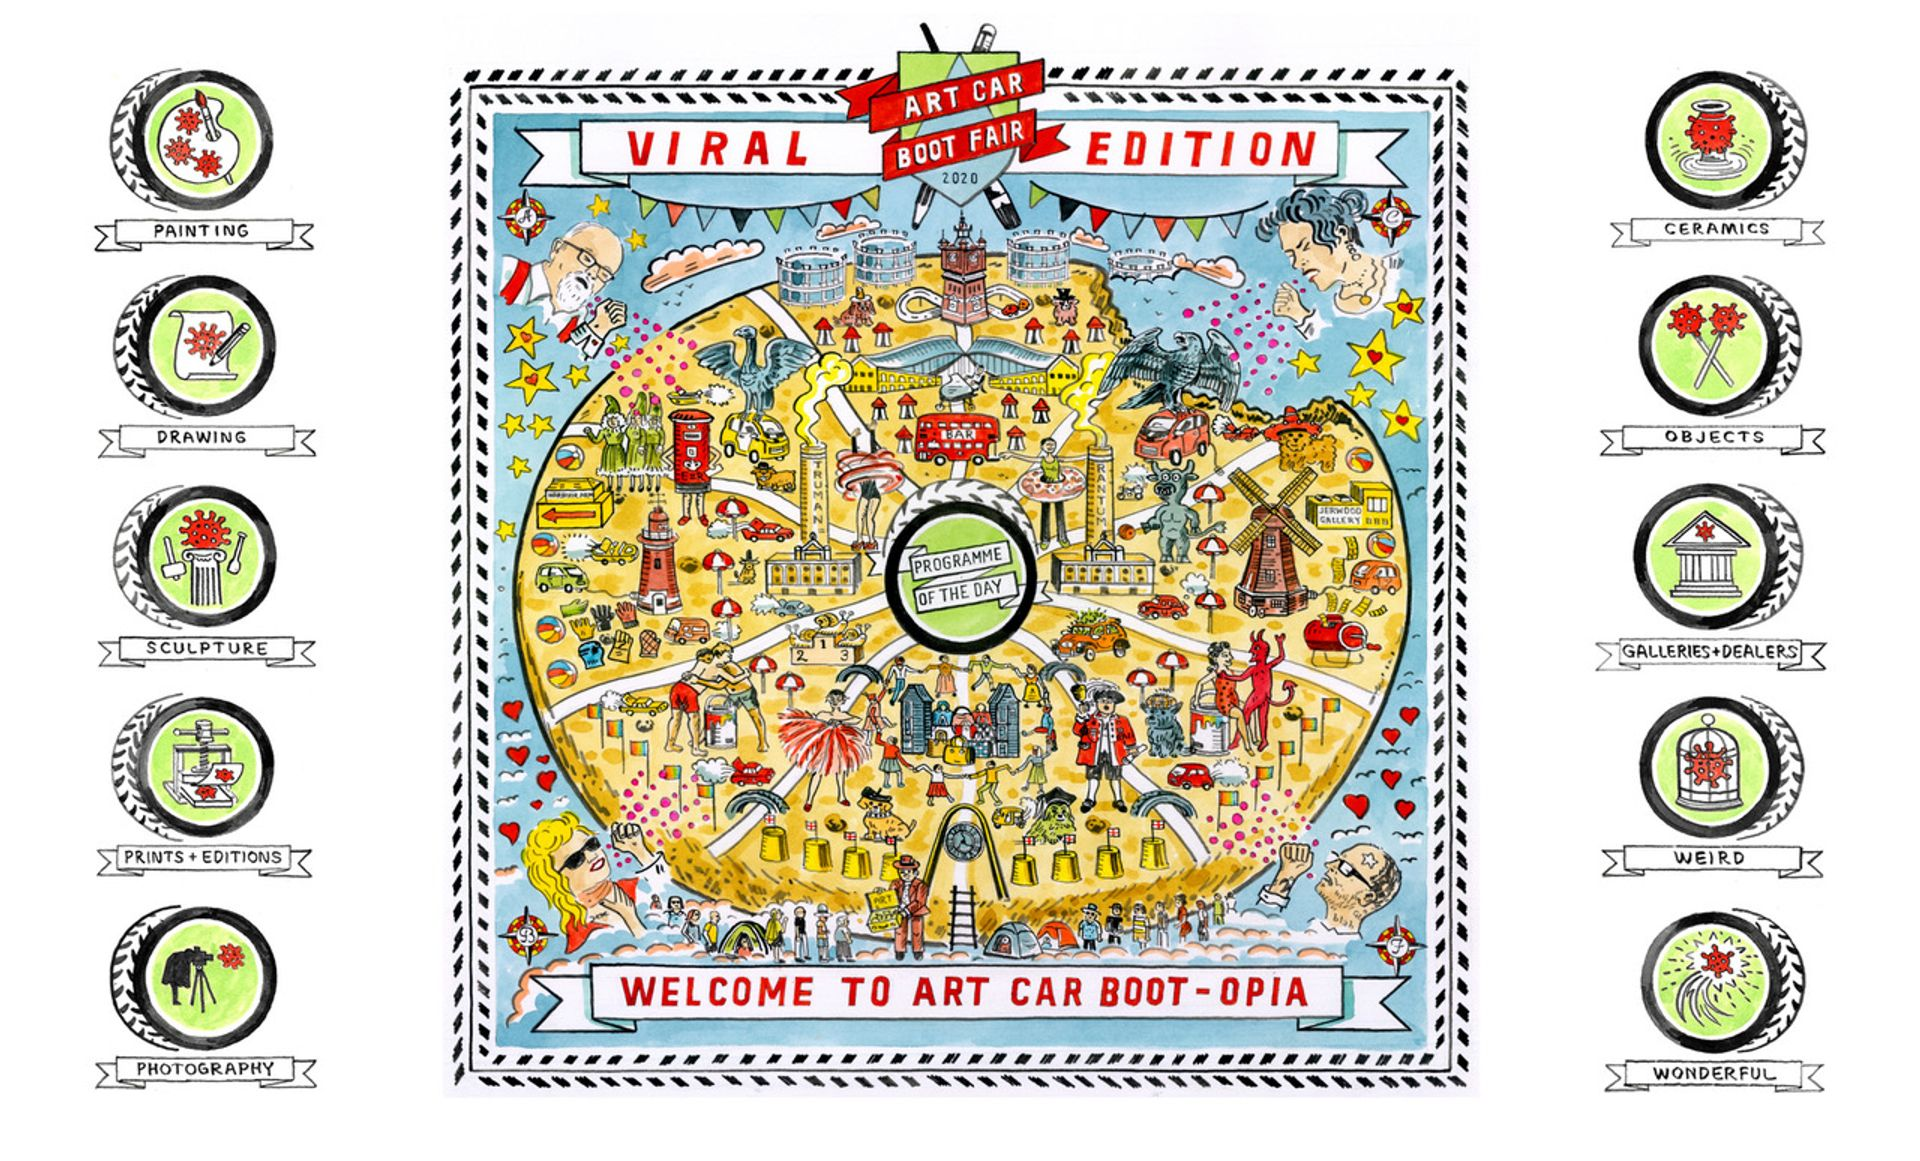 Adam Dant's Carbootopia map made for the Viral Art Car Boot Fair Courtesy of the artist and Art Car Boot Fair